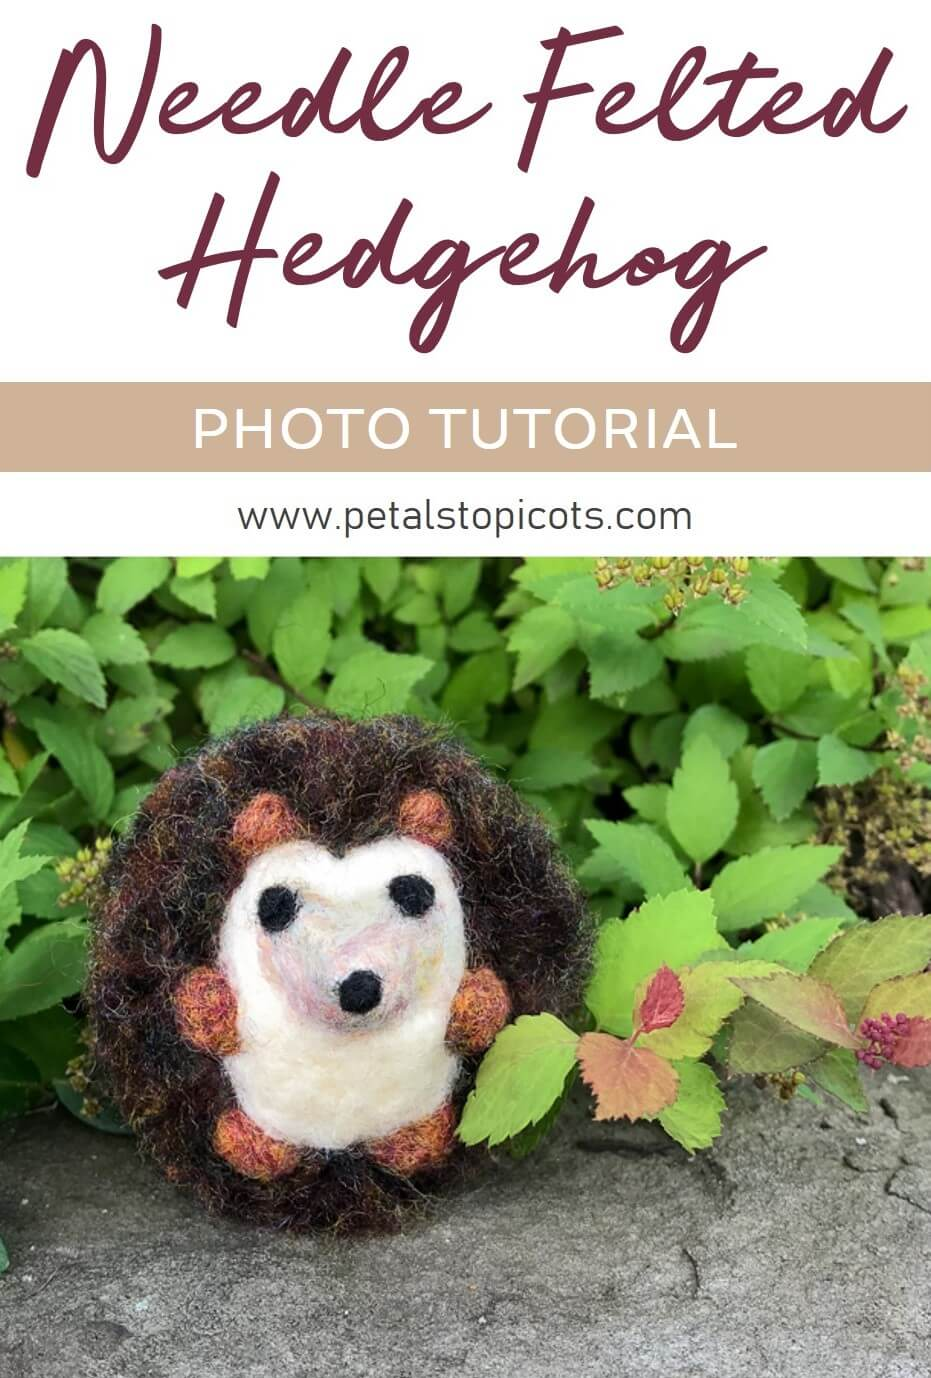 This adorable needle felted hedgehog makes for a cuddly woodland friend ... no prickly quills about him! Make your own with this step by step photo tutorial. #petalstopicots